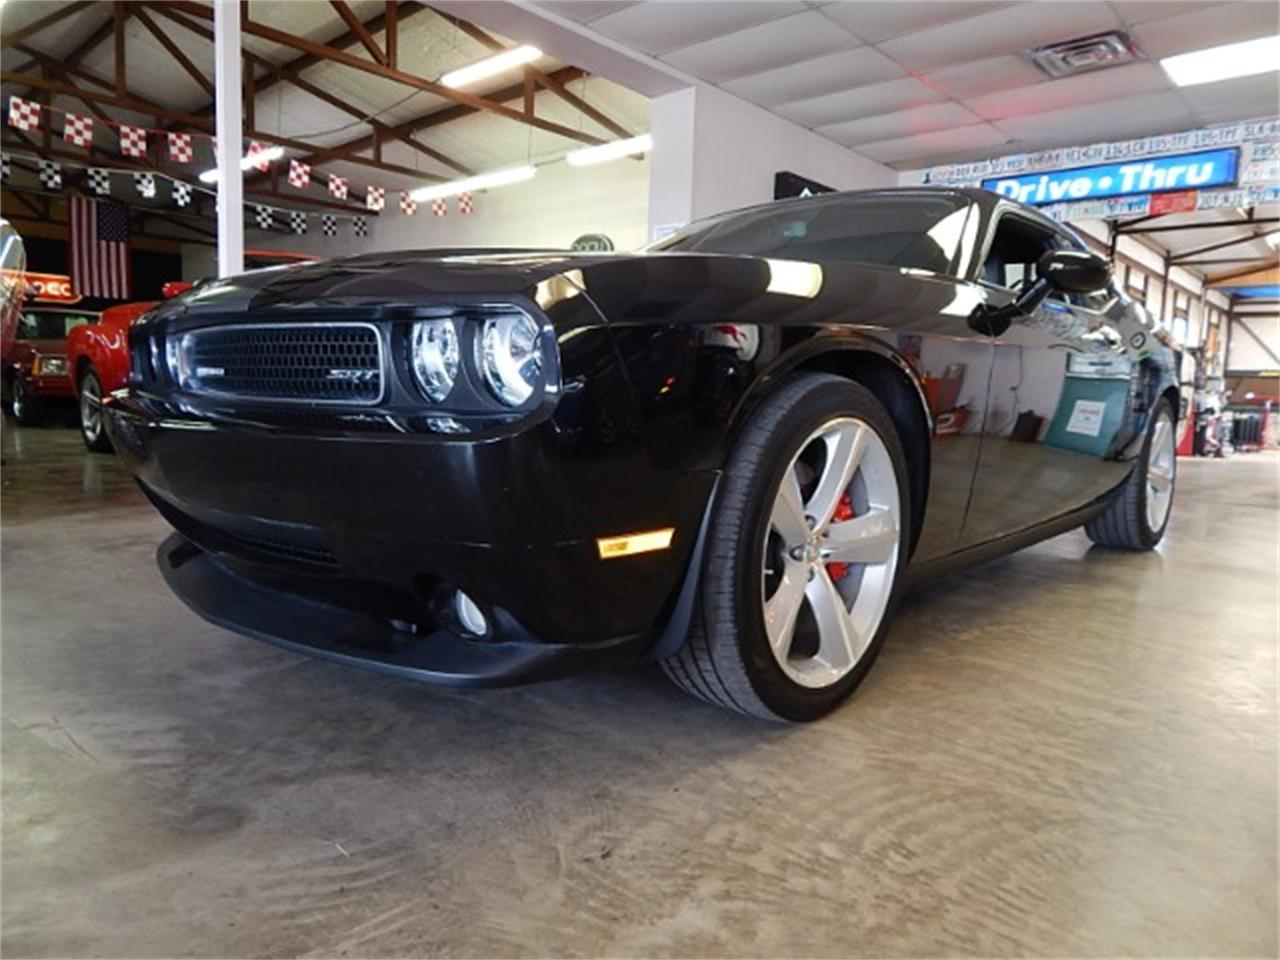 2008 Dodge Challenger for sale in Wichita Falls, TX – photo 2